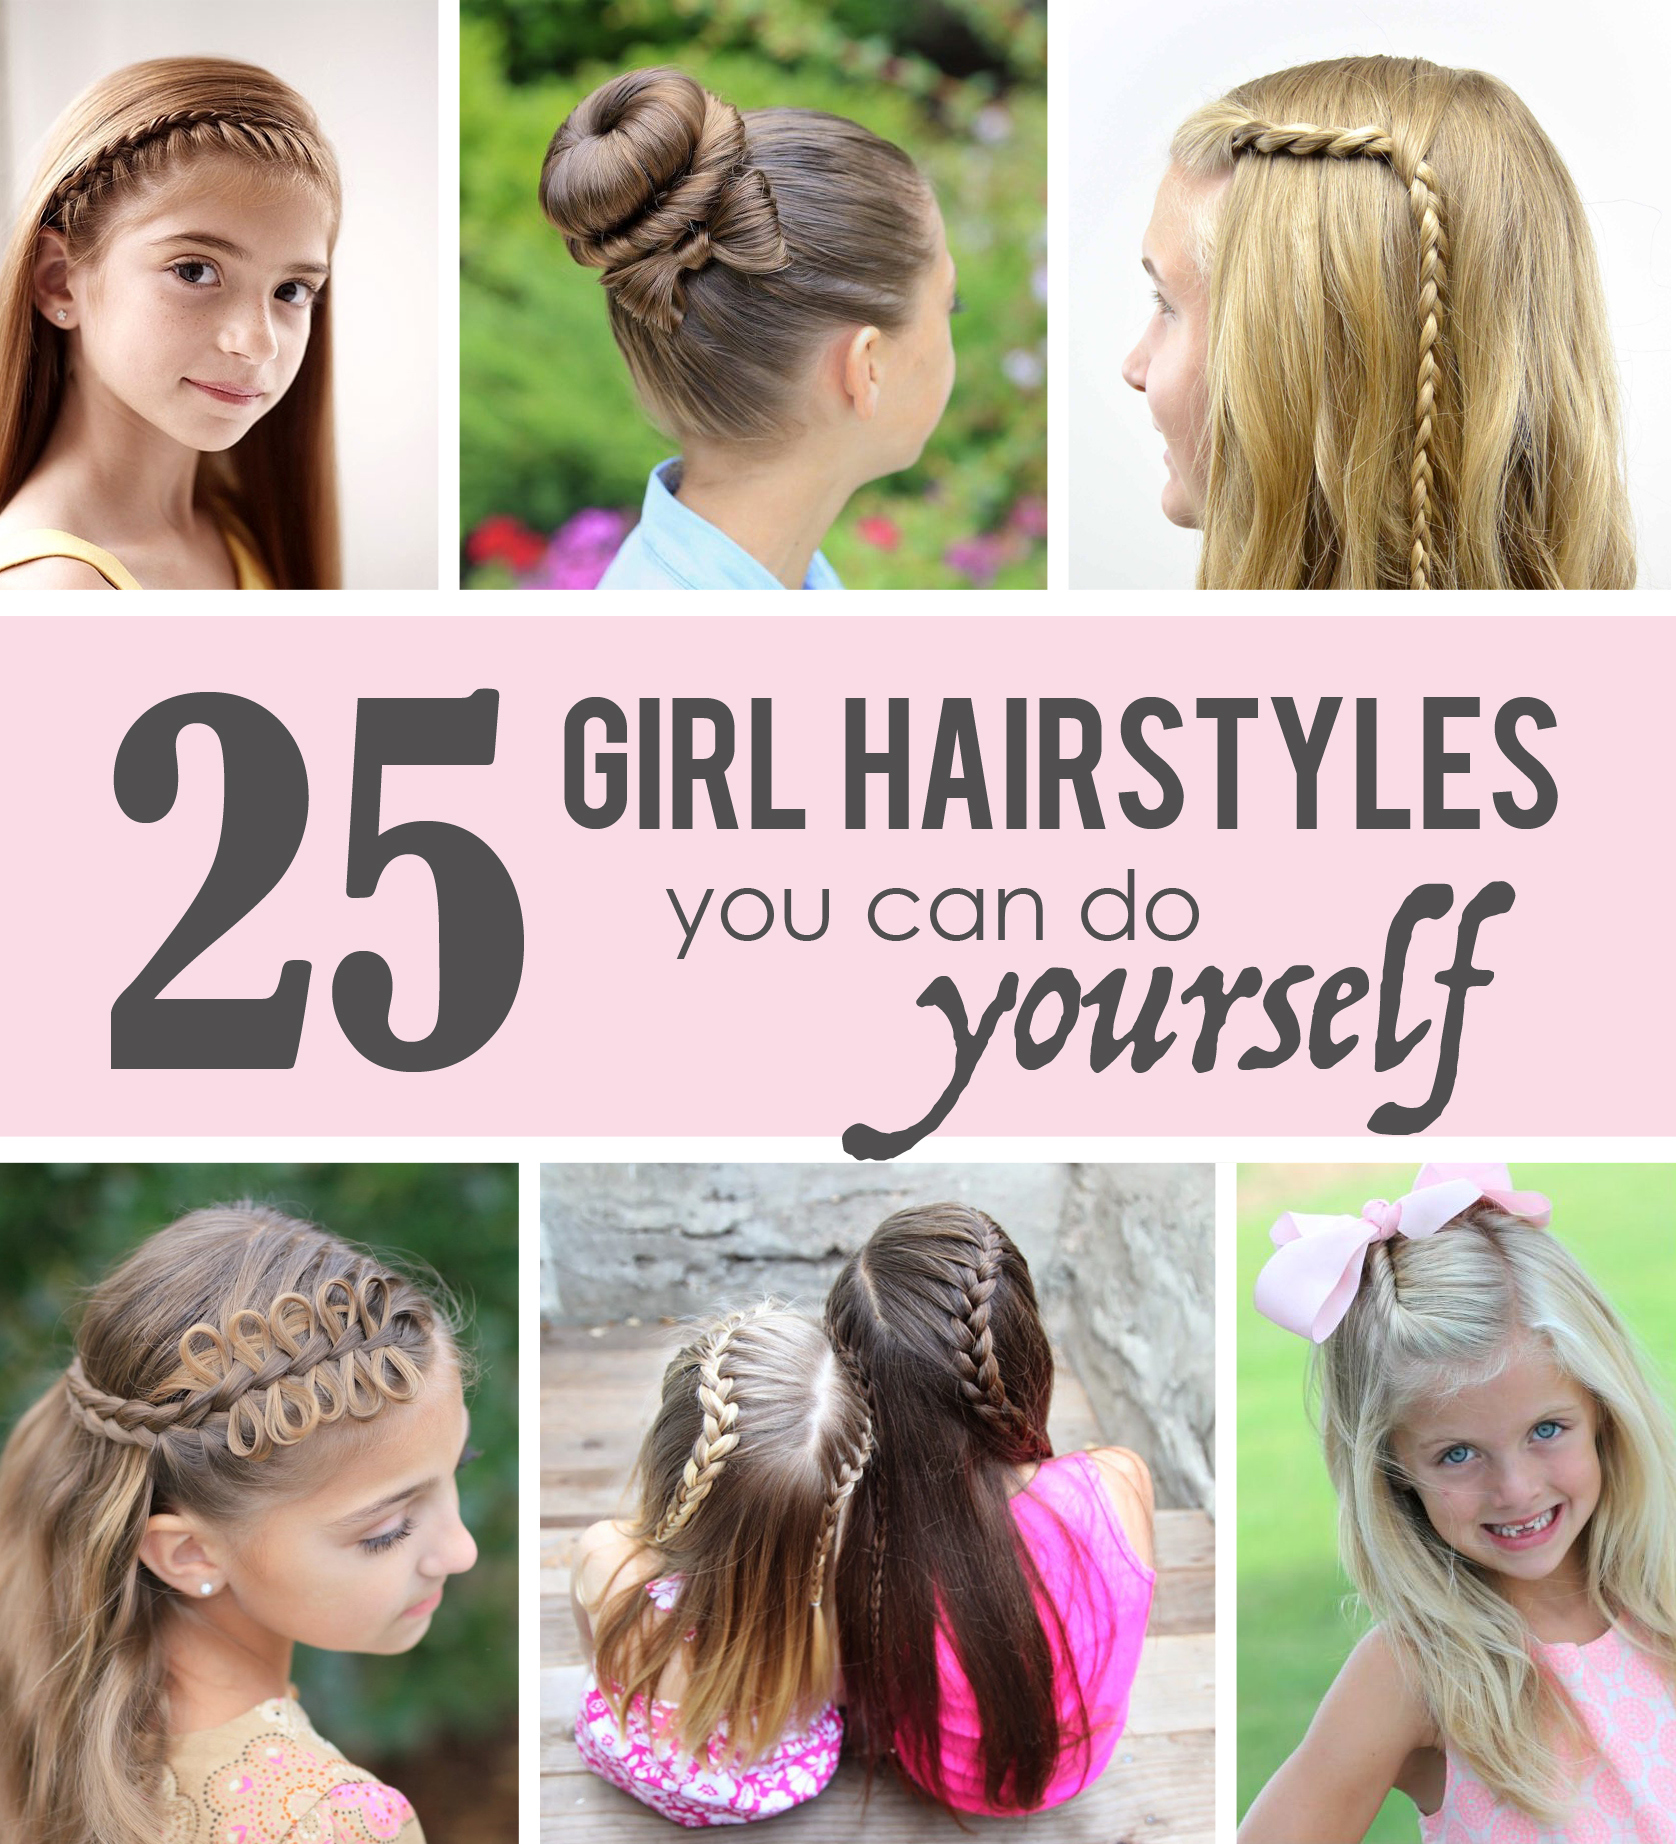 Marvelous 25 Little Girl Hairstyles You Can Do Yourself Hairstyles For Women Draintrainus